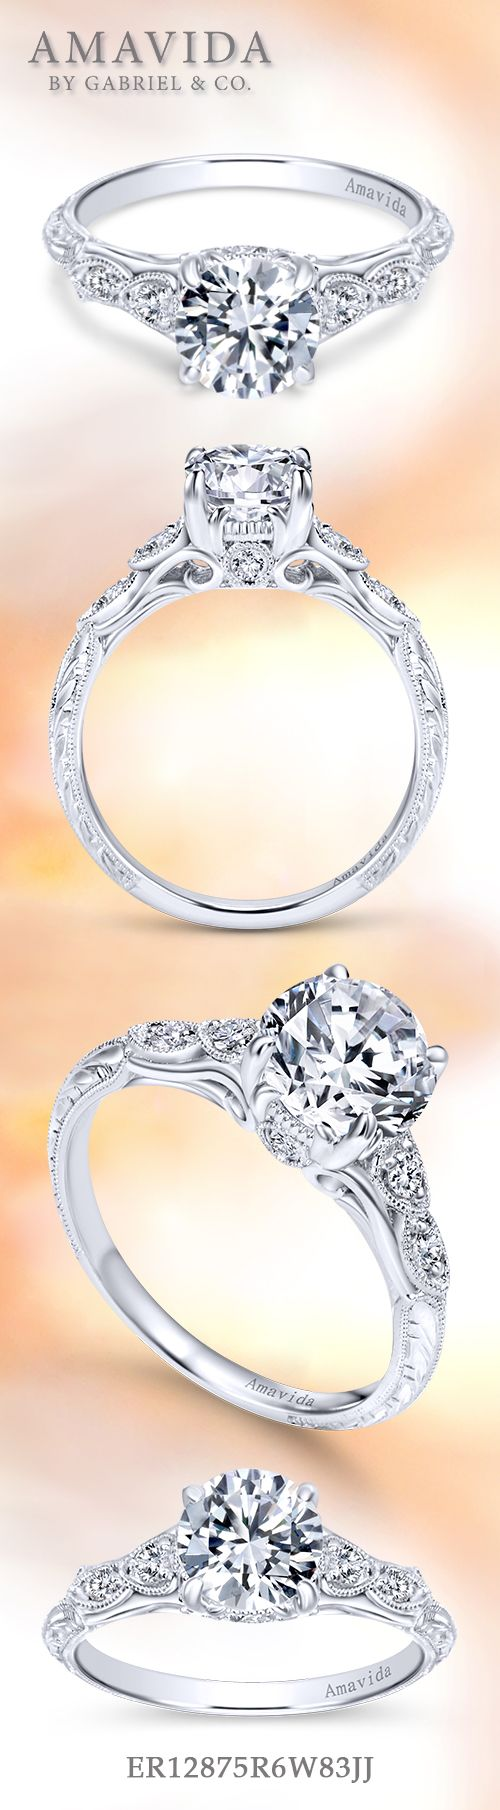 Amavida by Gabriel & Co. - Voted #1 Most Preferred Bridal Brand.   Crown her queen with this antique-style engagement ring.